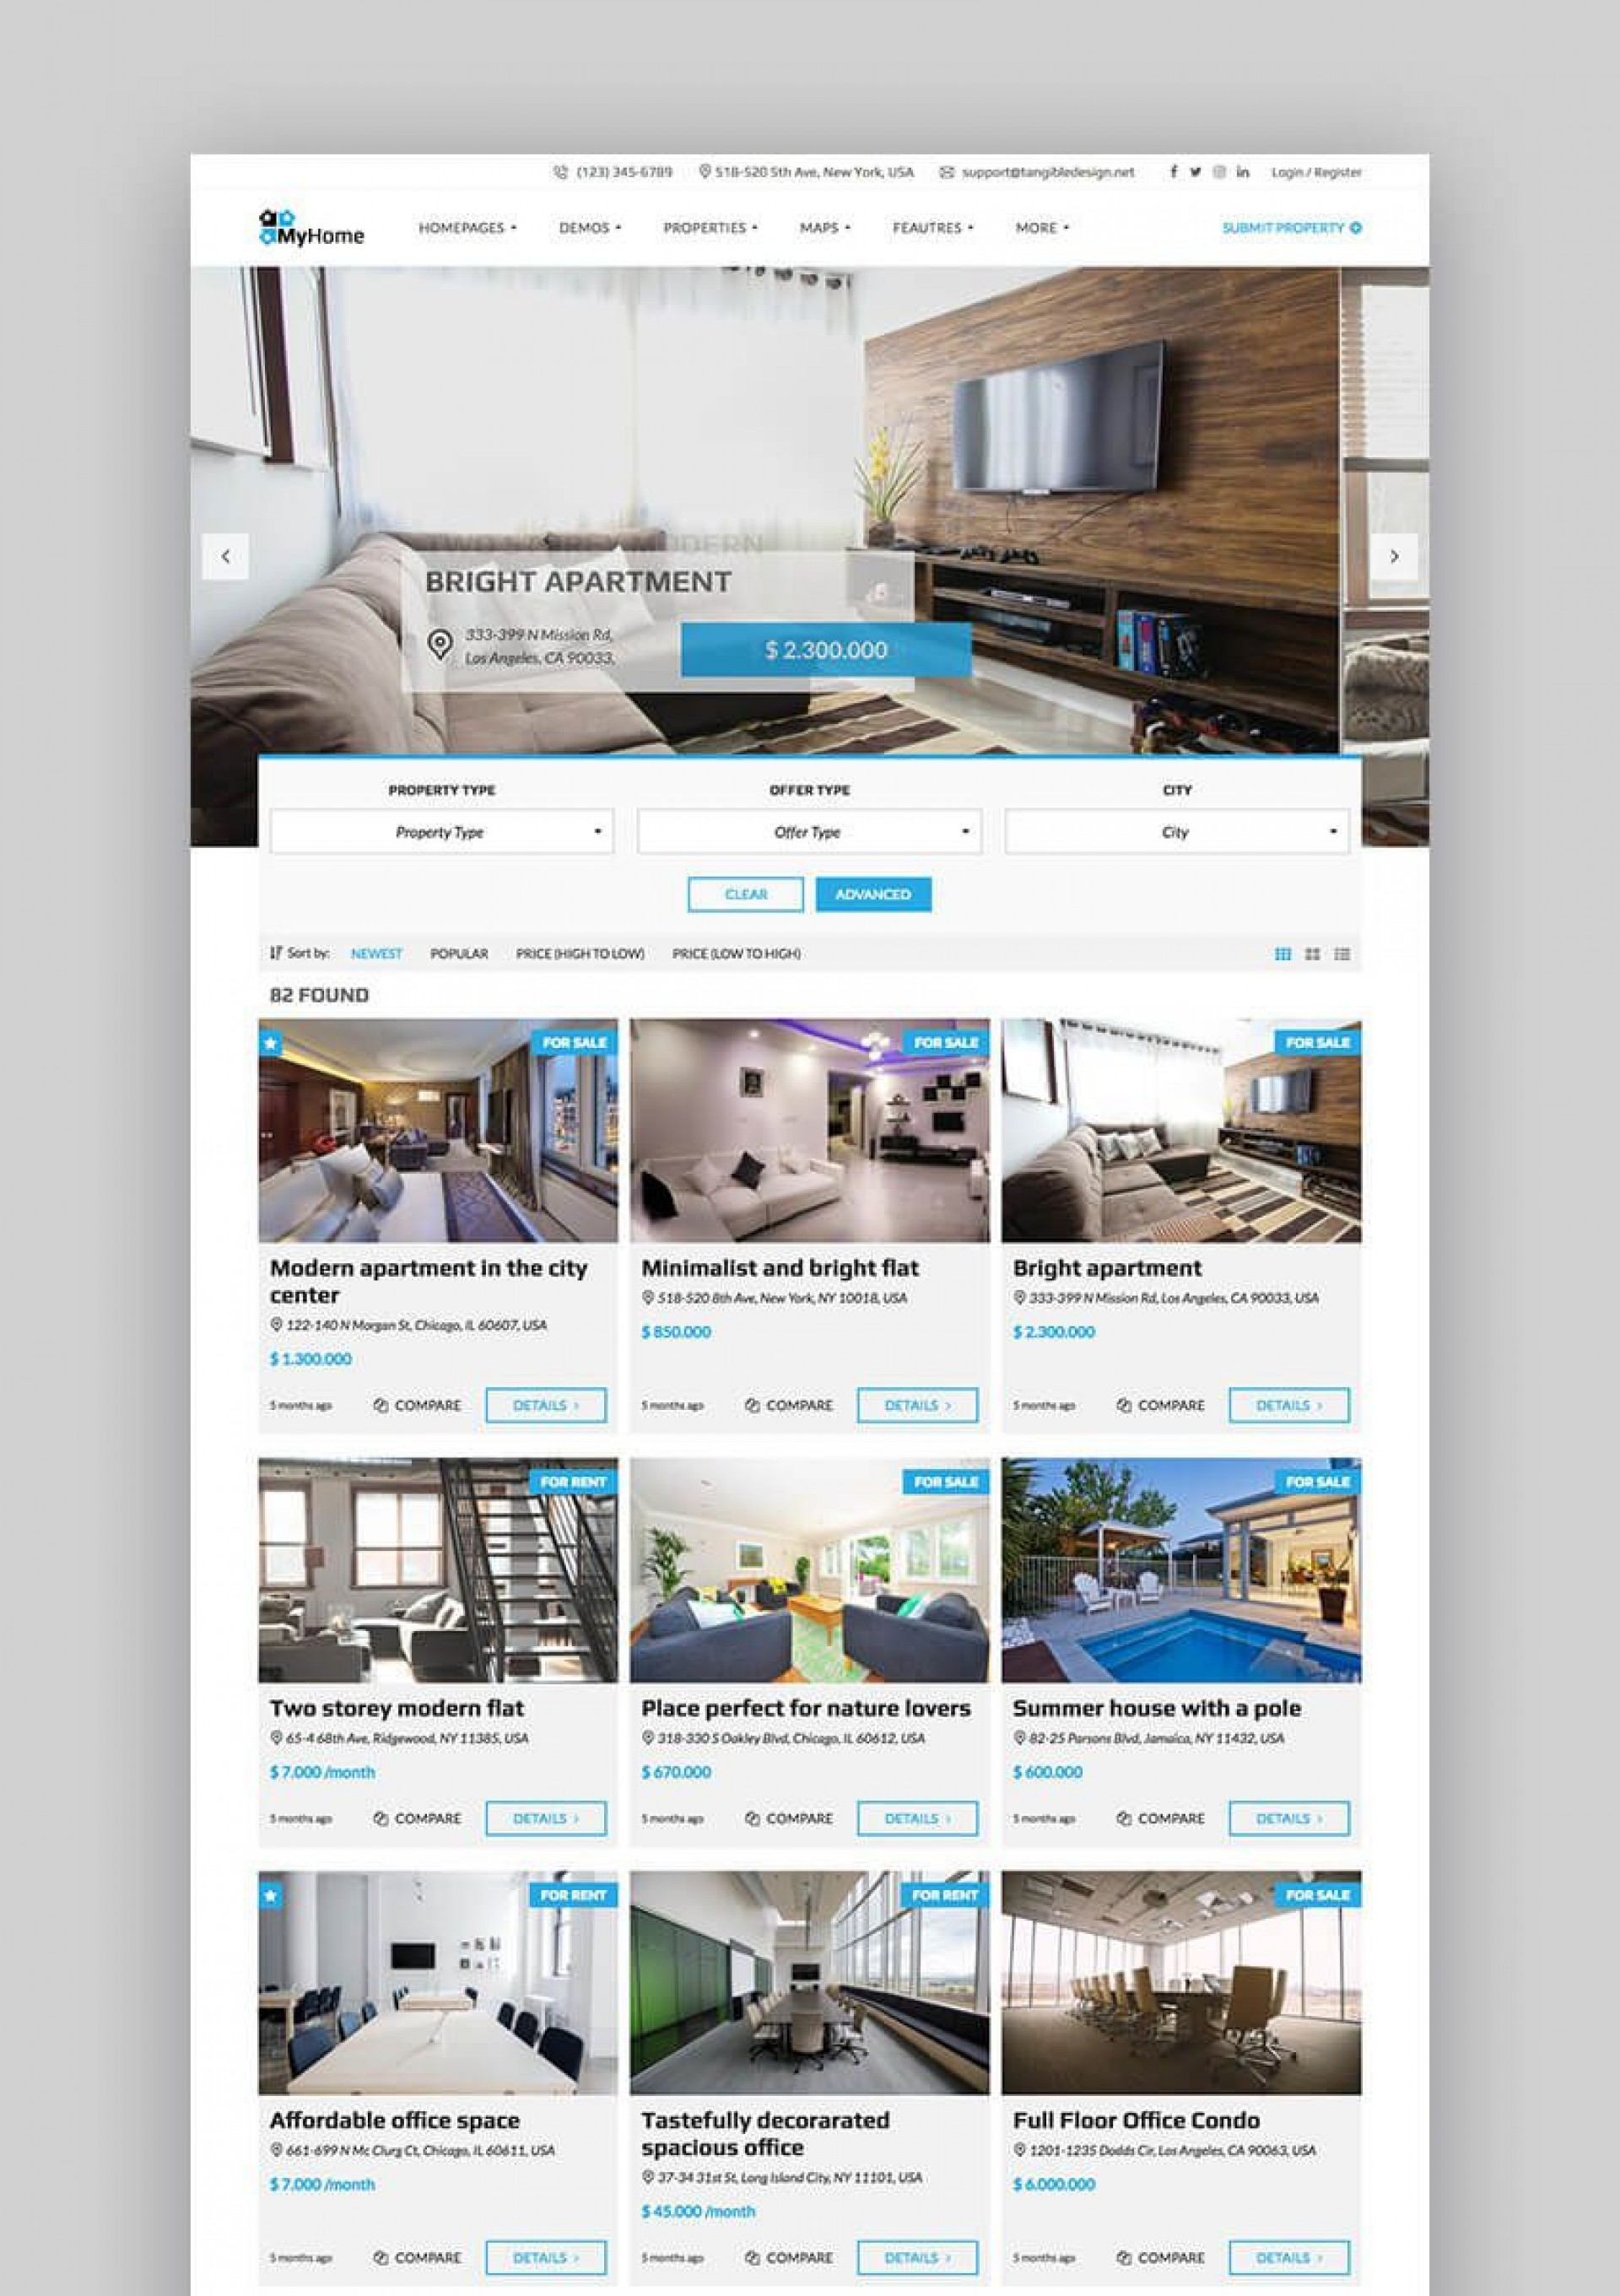 004 Impressive Real Estate Template Wordpres High Definition  Homepres - Theme Free Download Realtyspace1920